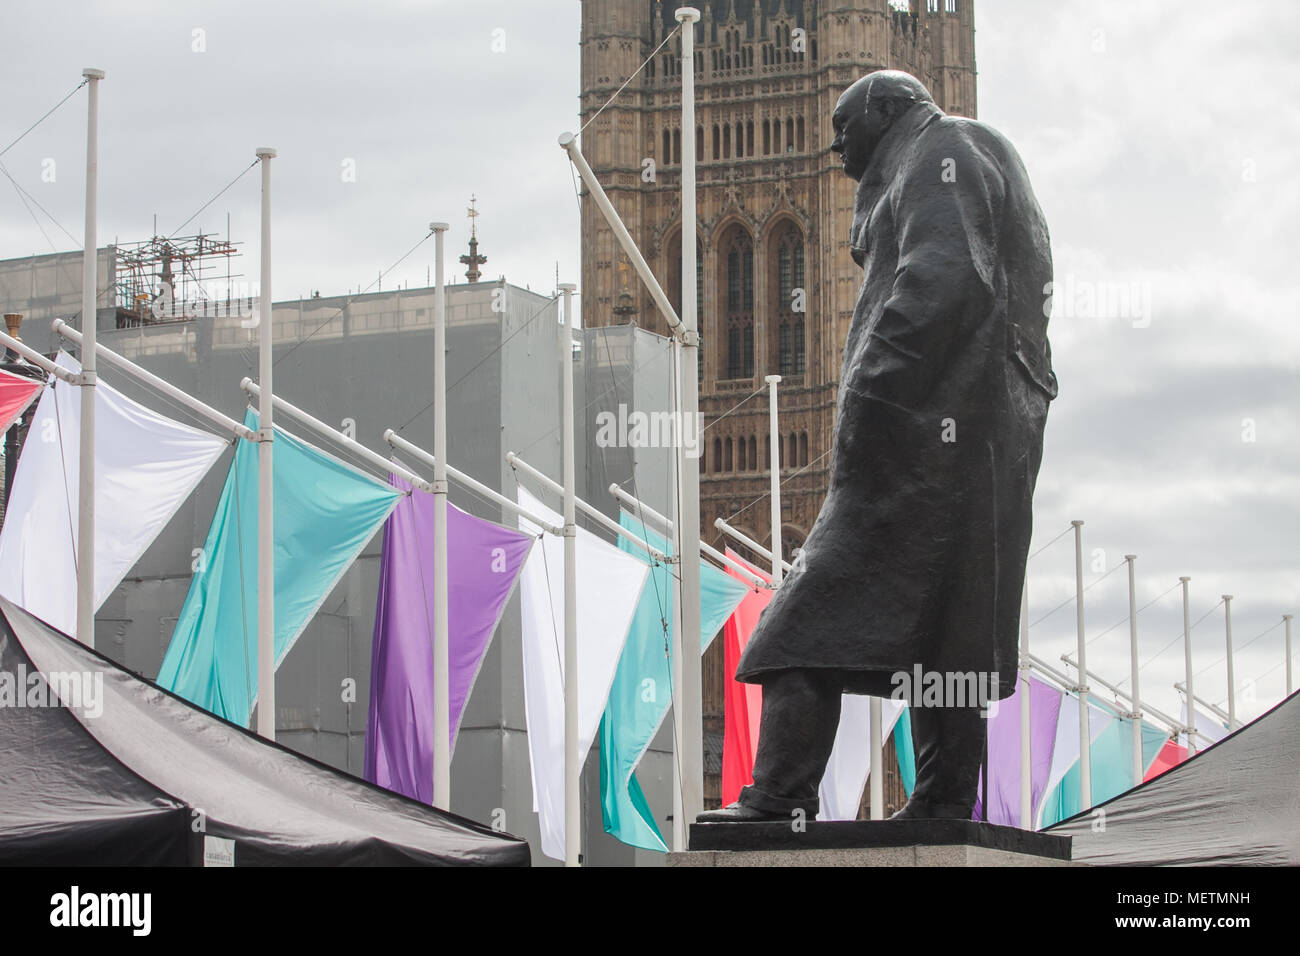 London UK. 23rd April 2018. Coloured Flags representing   the Sufragette movement hang in Parliament Square in honour of Millicent Fawcett ,a  British feminist, political and union leader, who  campaigned for women to have the vote. In 1908  Emmeline Pethick-Lawrence, designed the suffragettes' colour scheme of purple for loyalty and dignity, white for purity, and green for hope Credit: amer ghazzal/Alamy Live News Stock Photo